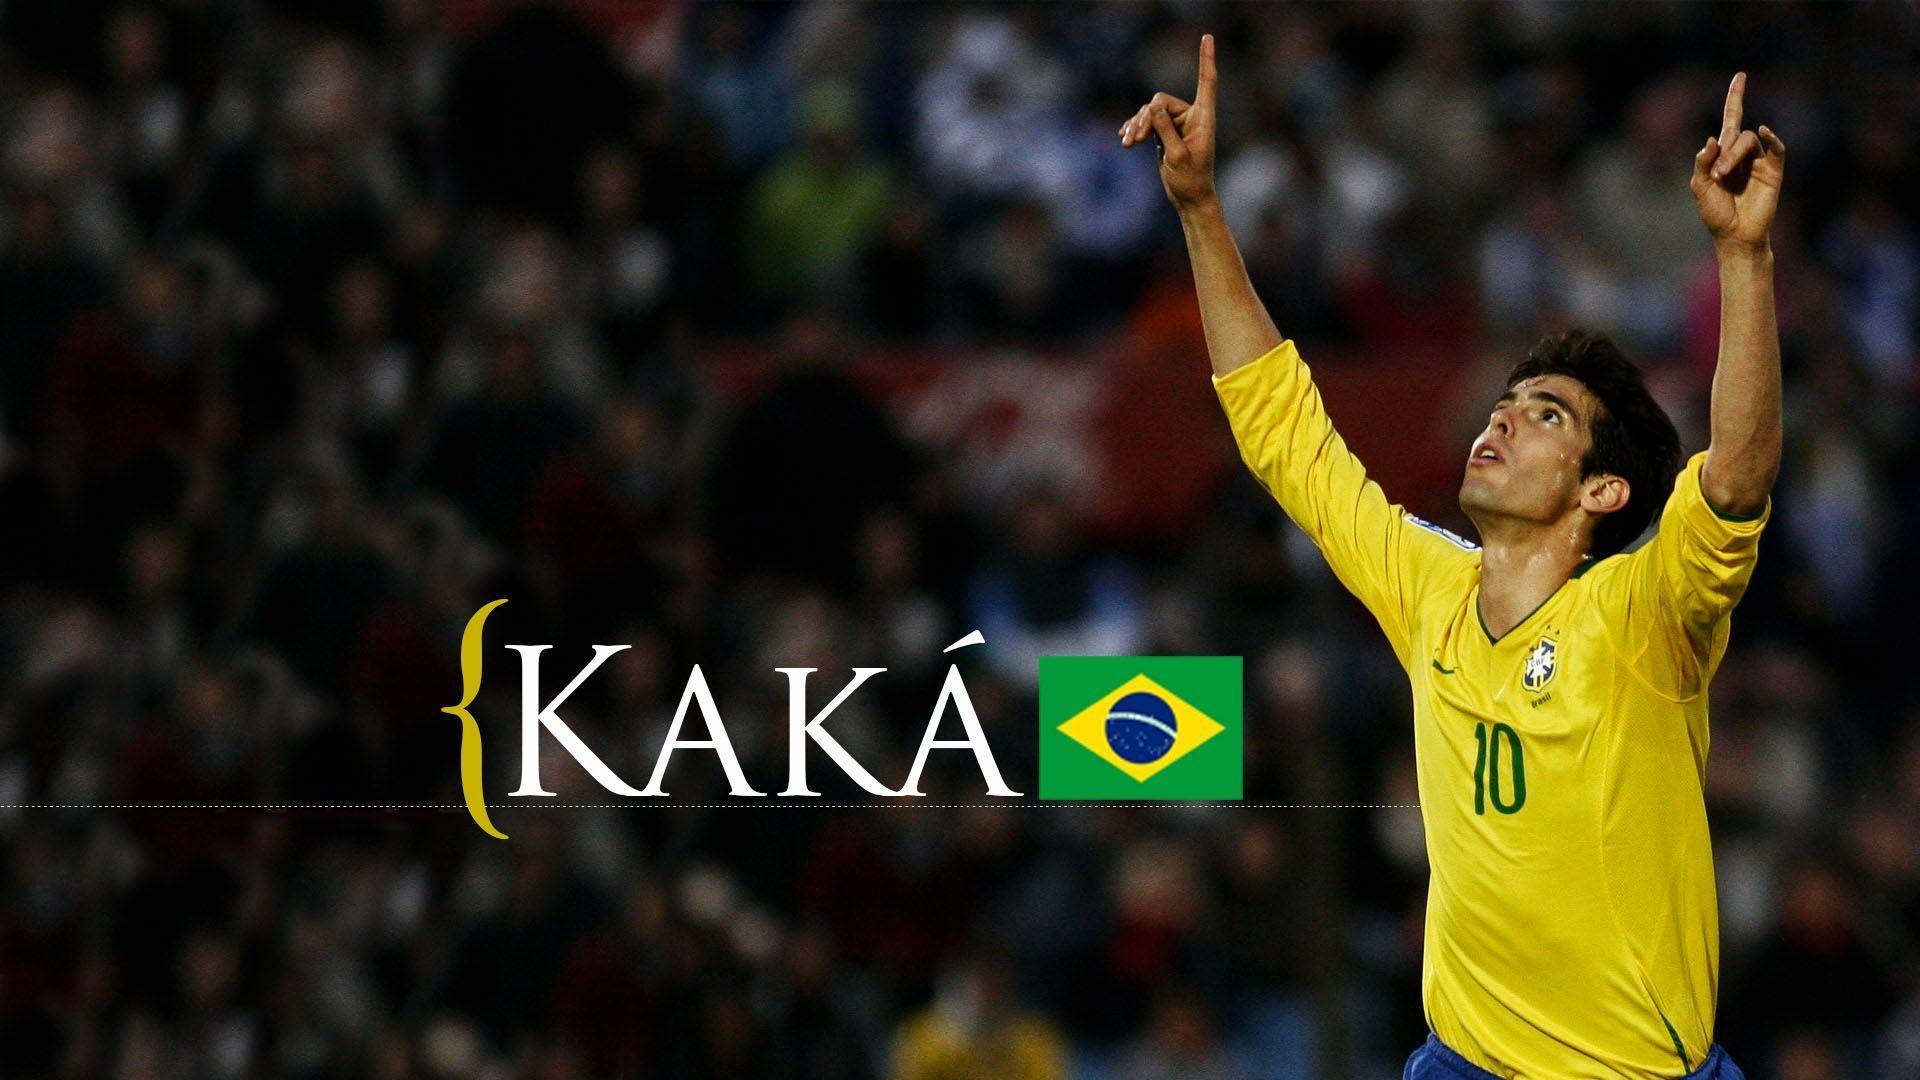 Wallpapers Of Kaka - Wallpaper Cave